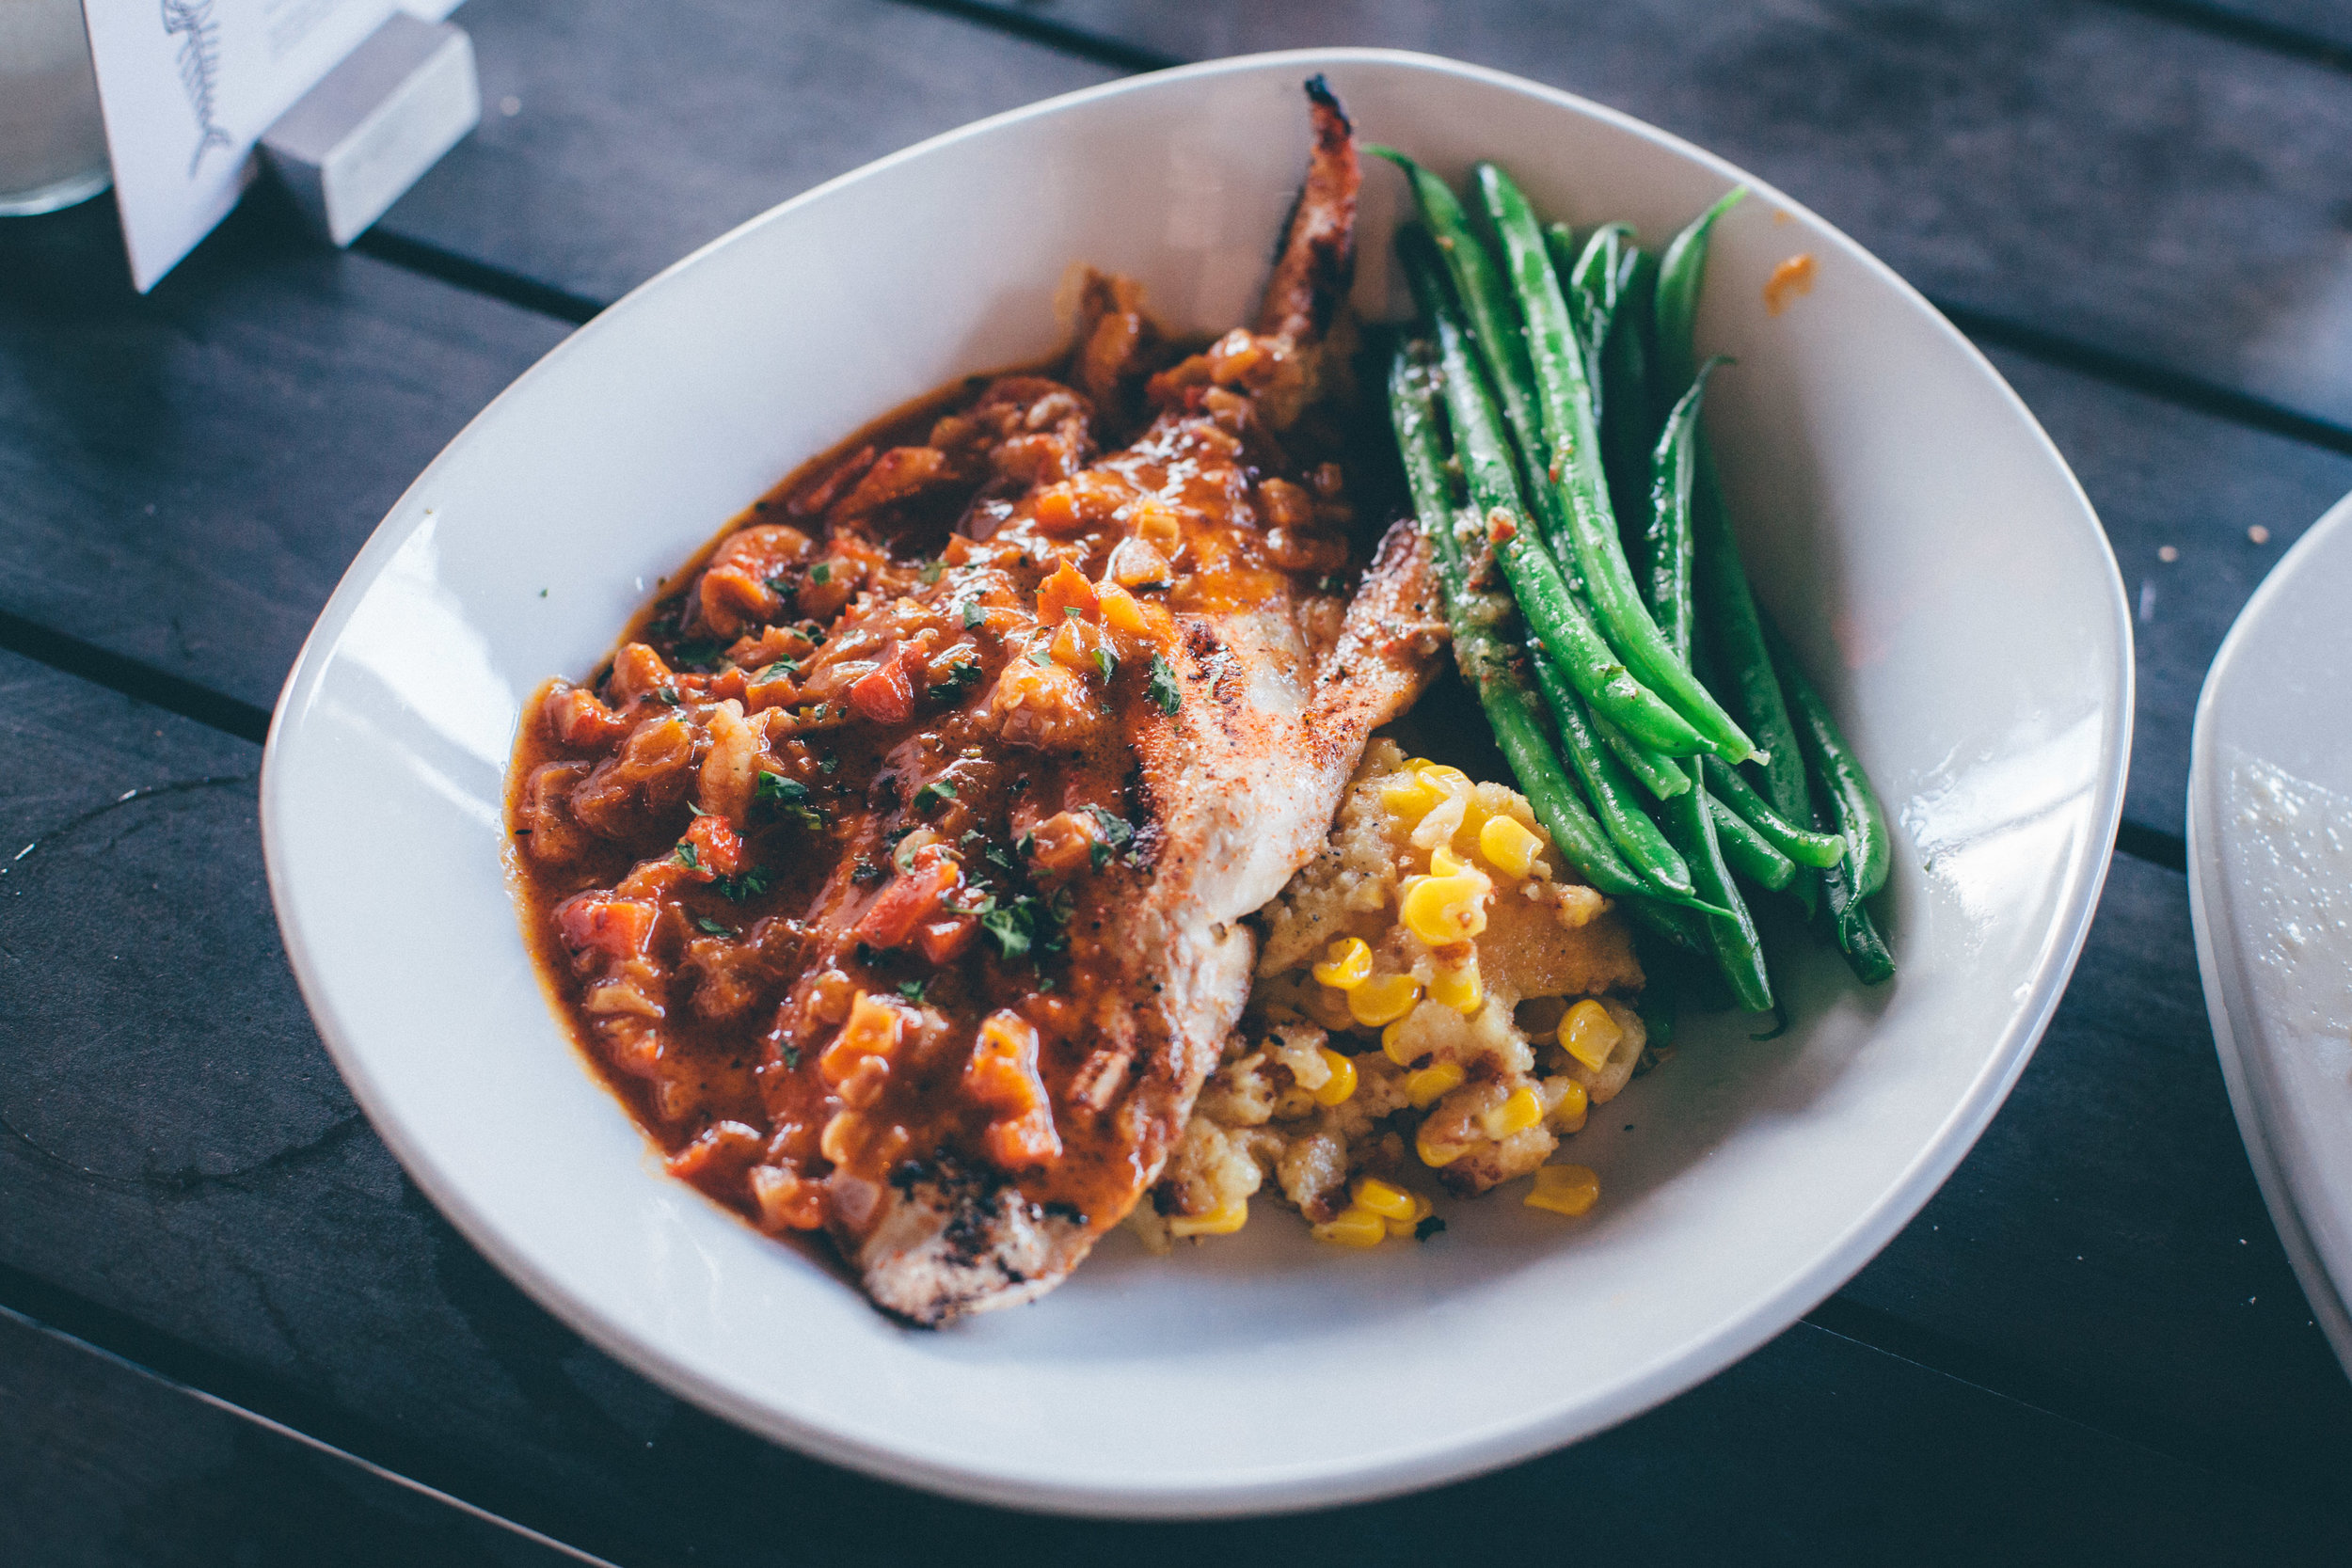 Creole-Style Redfish:A mild, sweet flavor with a medium firm texture. Wood-grilled and topped with crawfish and a Creole-style sauce, served with sweet corn spoonbread and french green beans